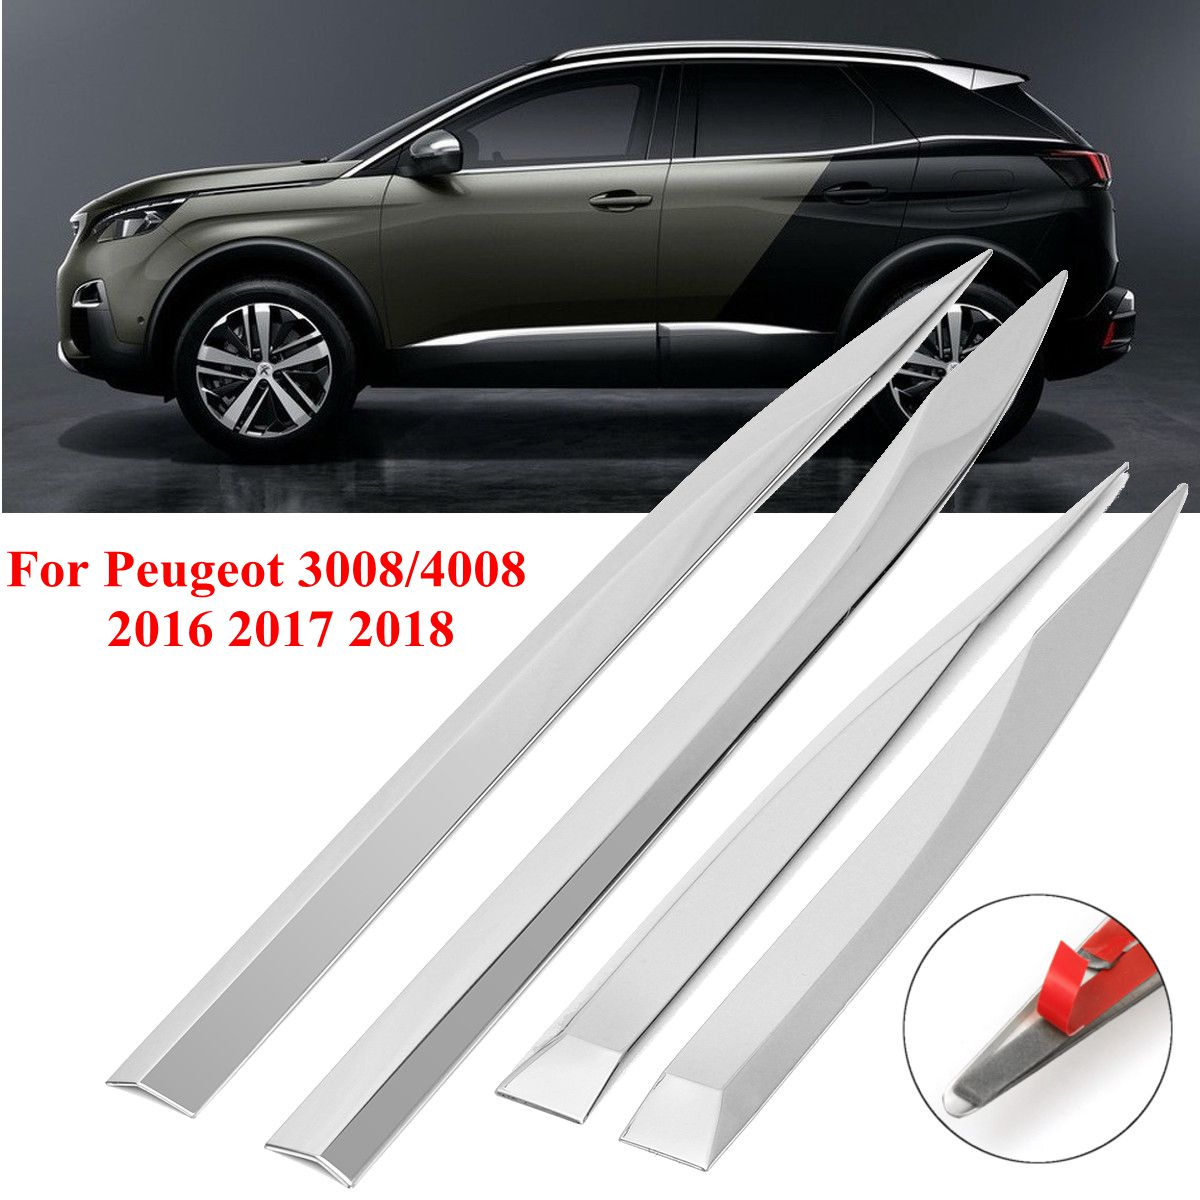 4pcs For Peugeot 3008/4008 2016 2017 2018 Car Door Body Chrome Side Molding Protector Trim Stainless Steel-in Chromium Styling from Automobiles & Motorcycles    1